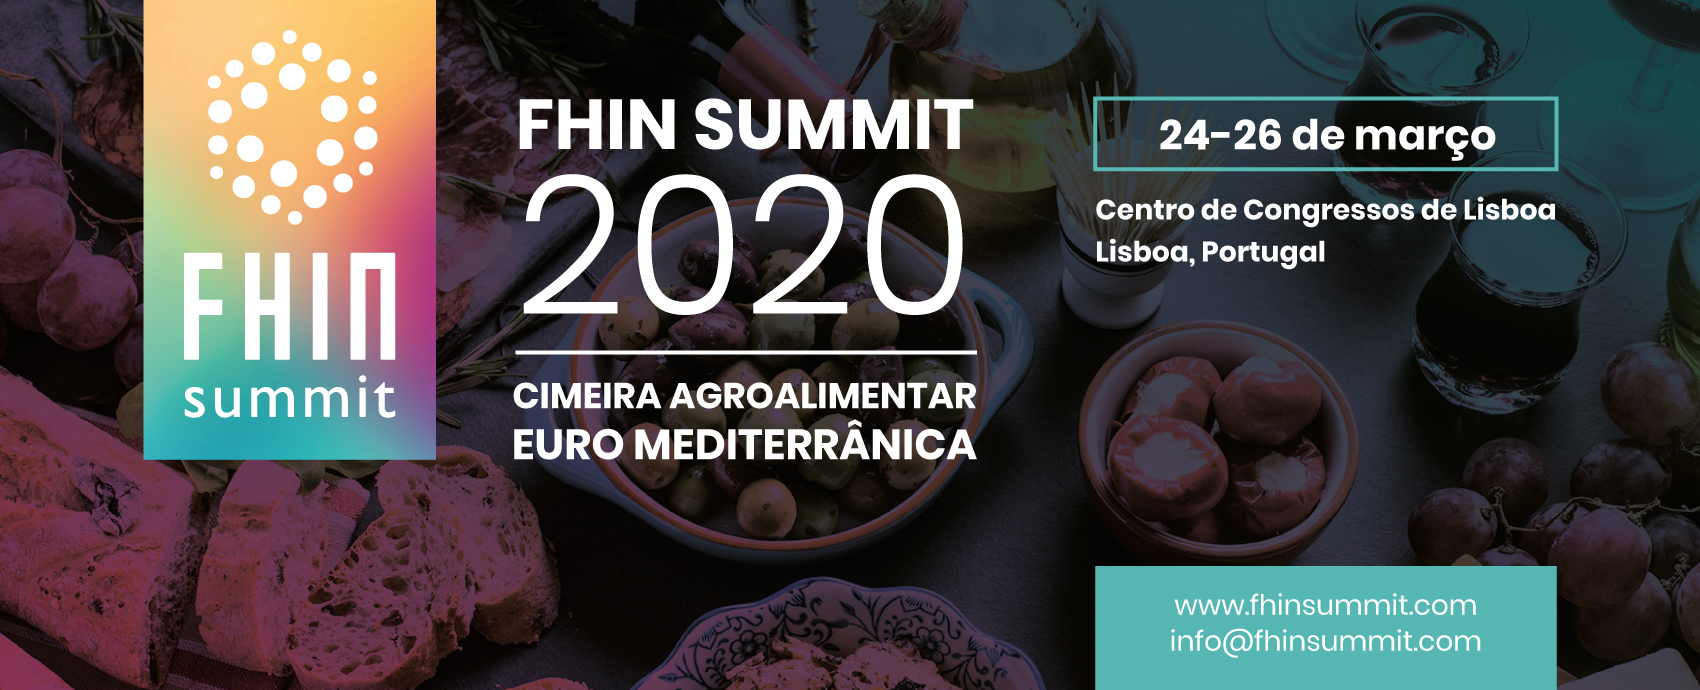 FHIN SUMMIT 2020